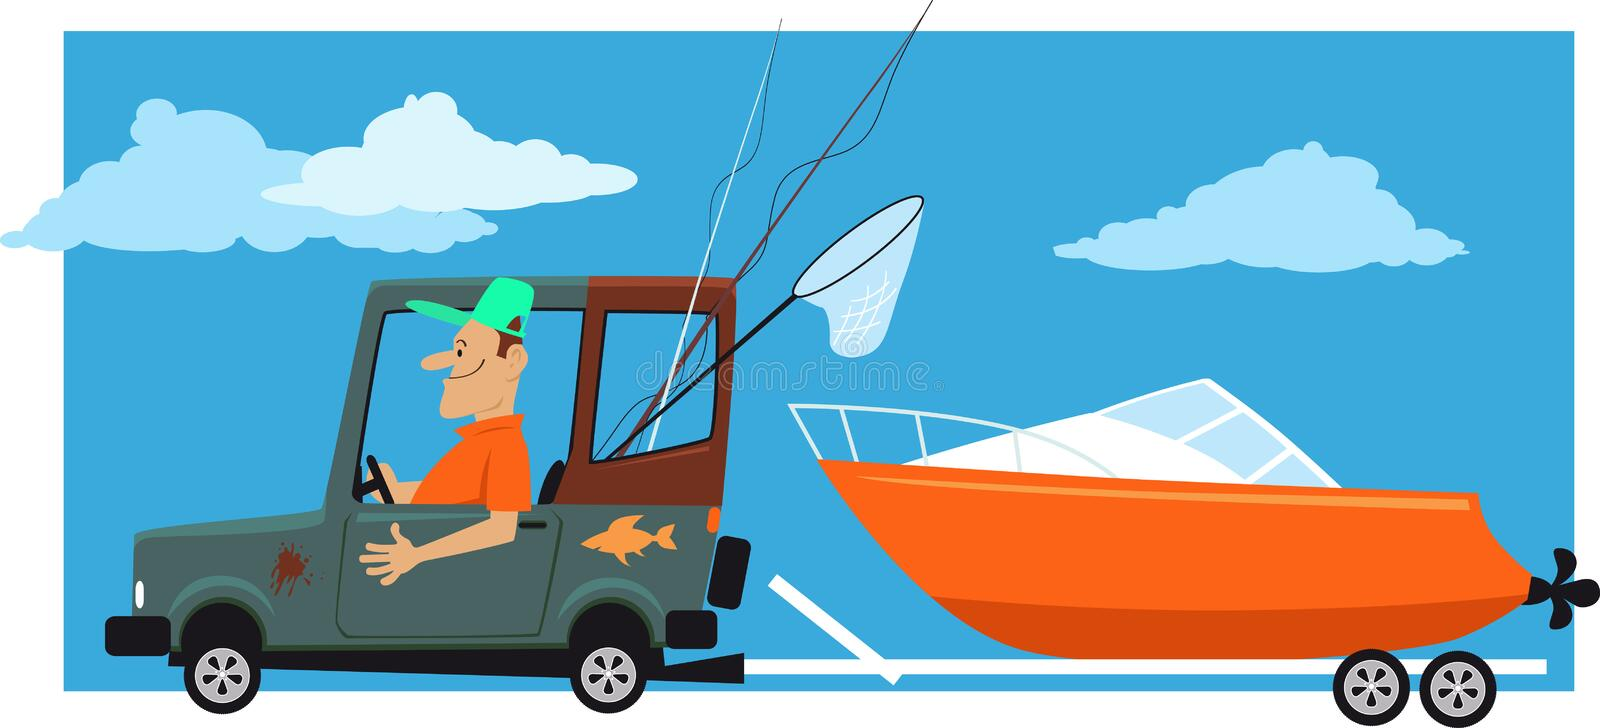 Towing a boat royalty free illustration